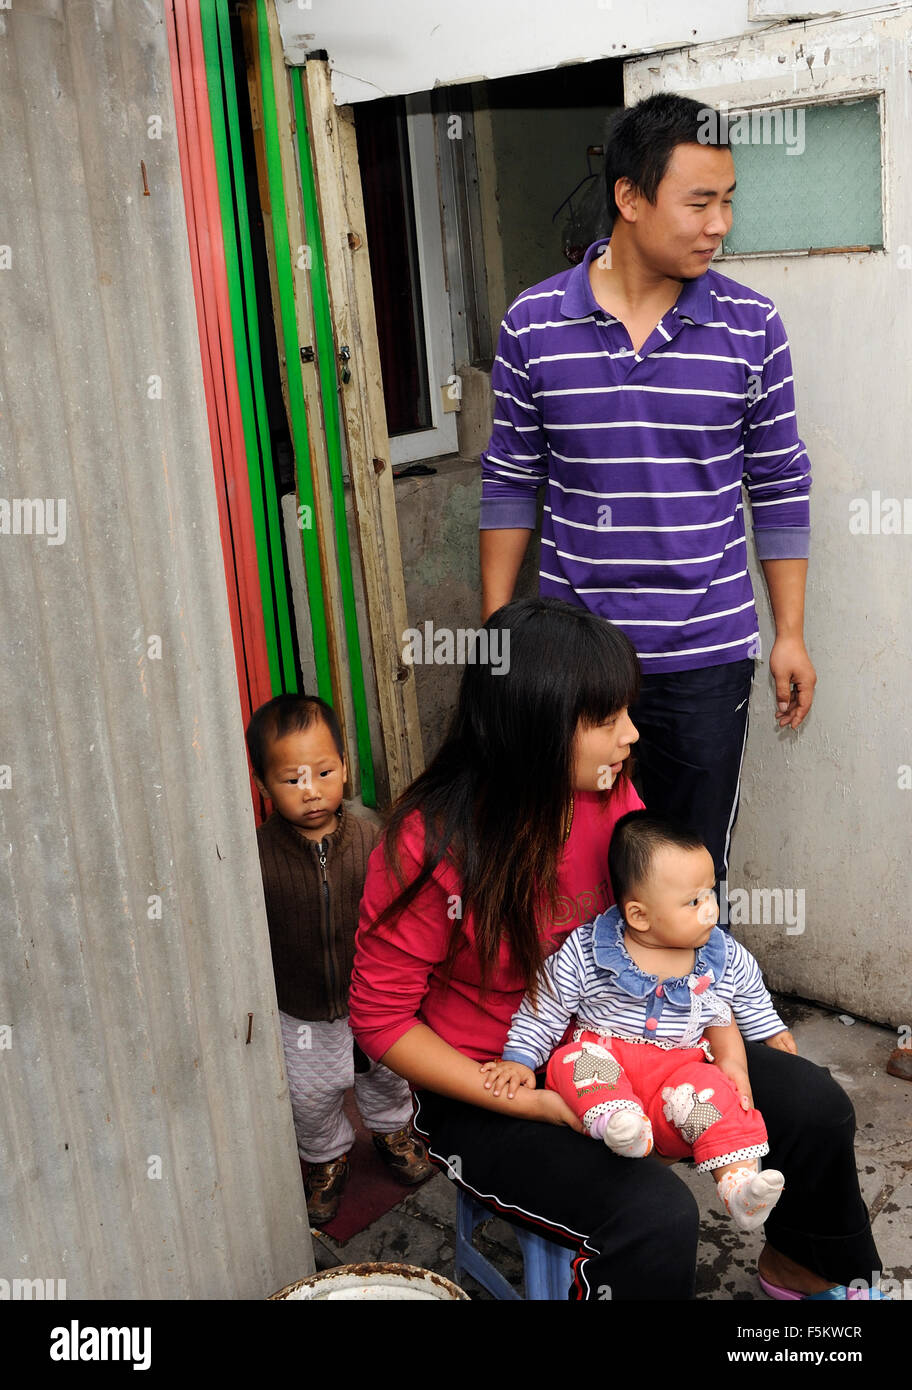 A family with two children in Beijing, China. - Stock Image